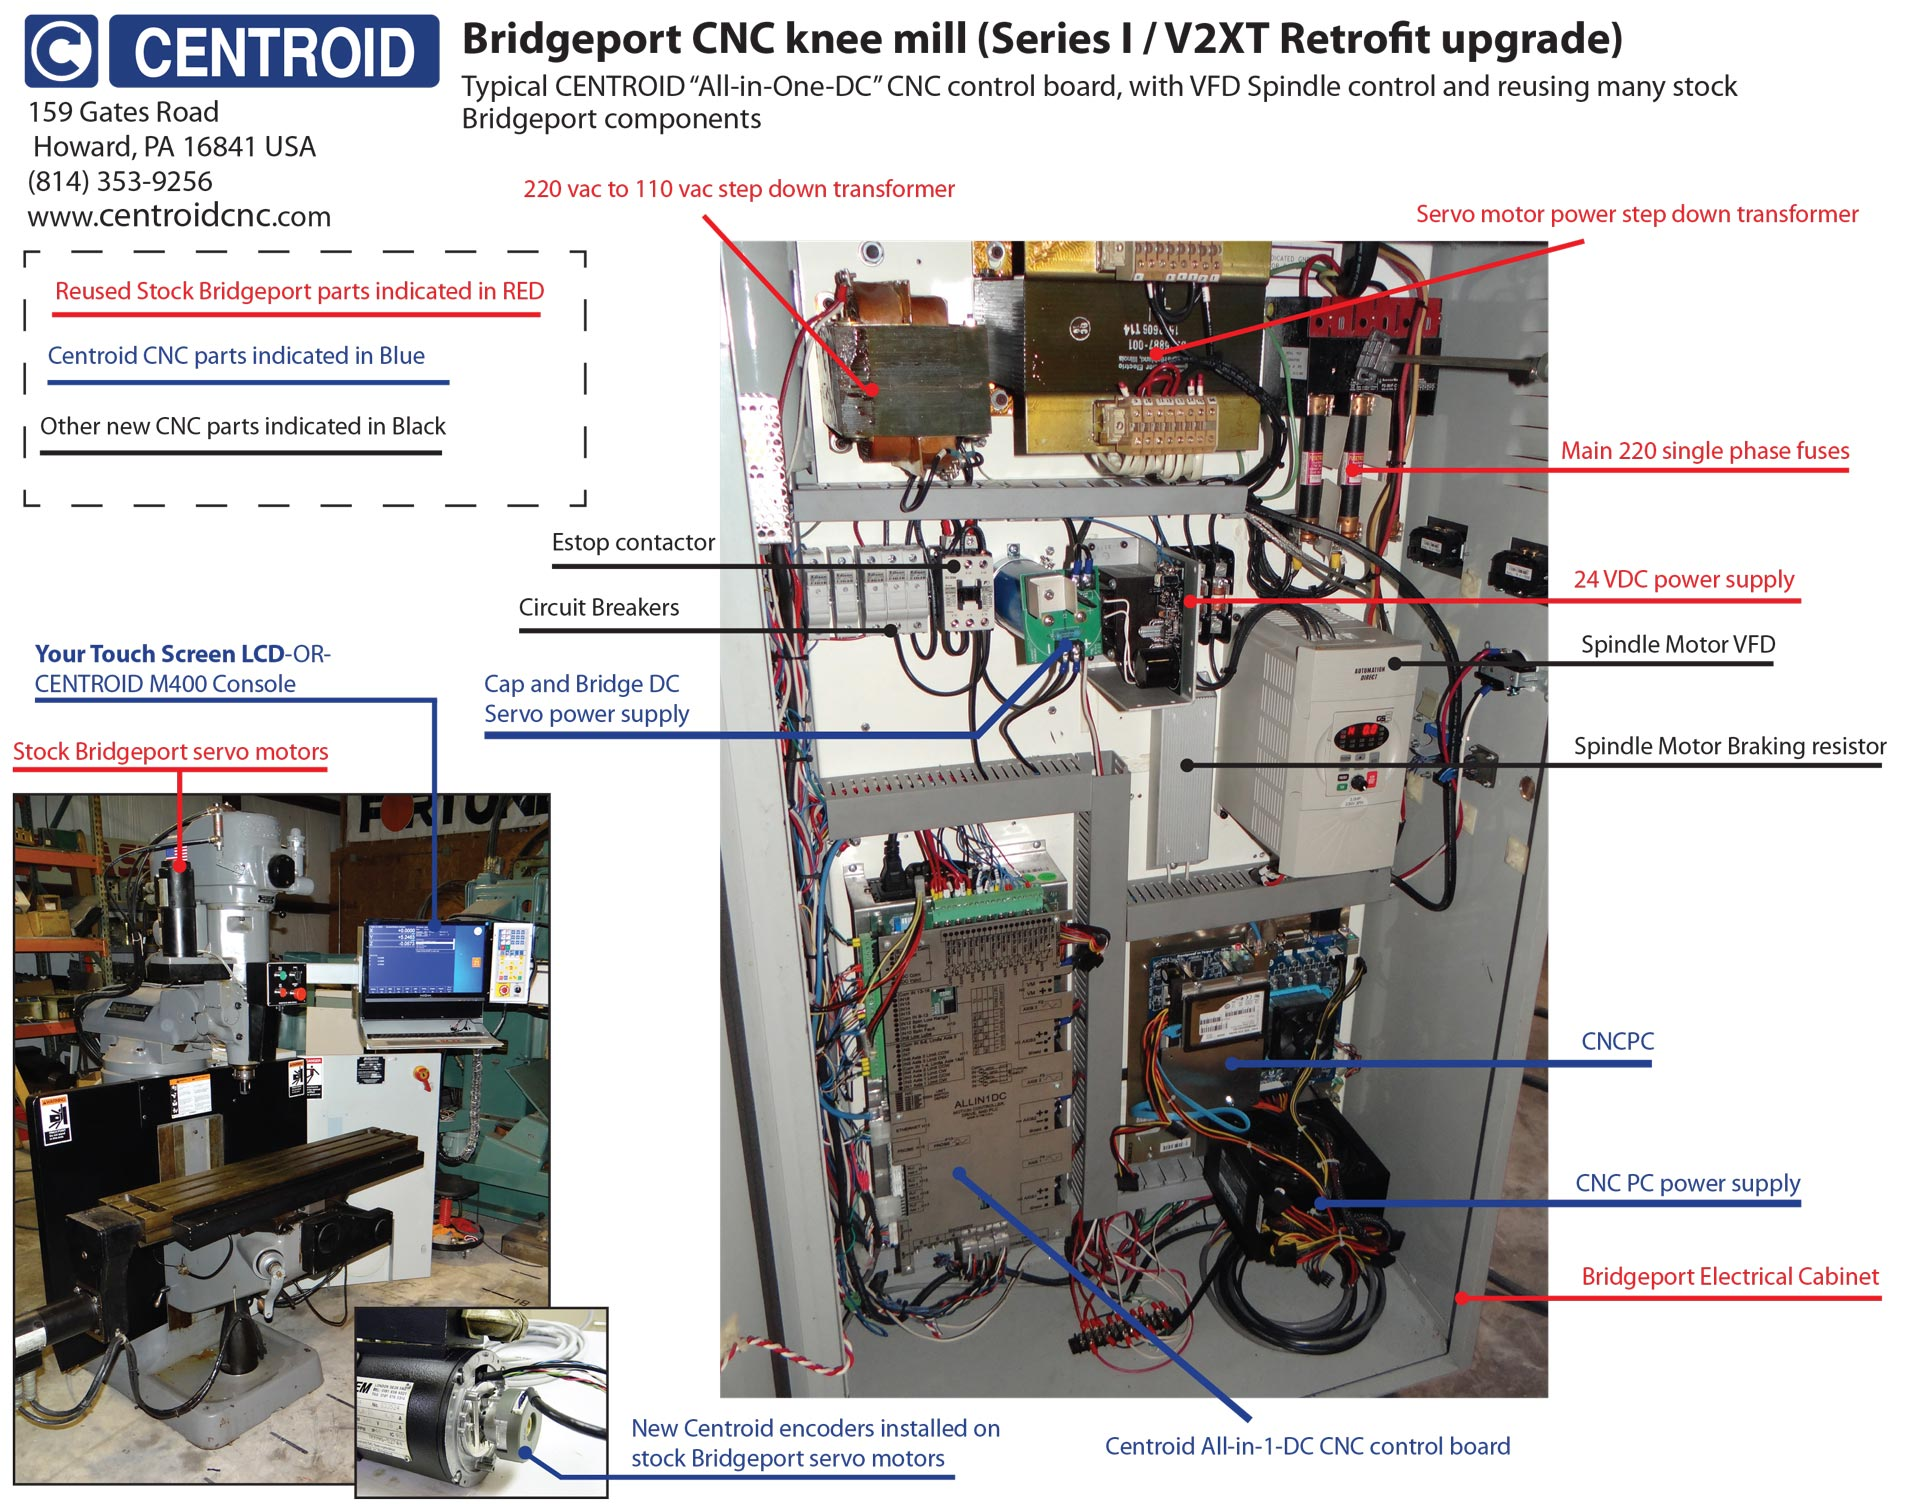 Cnc Controller For Bridgeport V2xt Dx 32 Retrofit Controls Plc Panel Wiring Diagram Pdf Download The